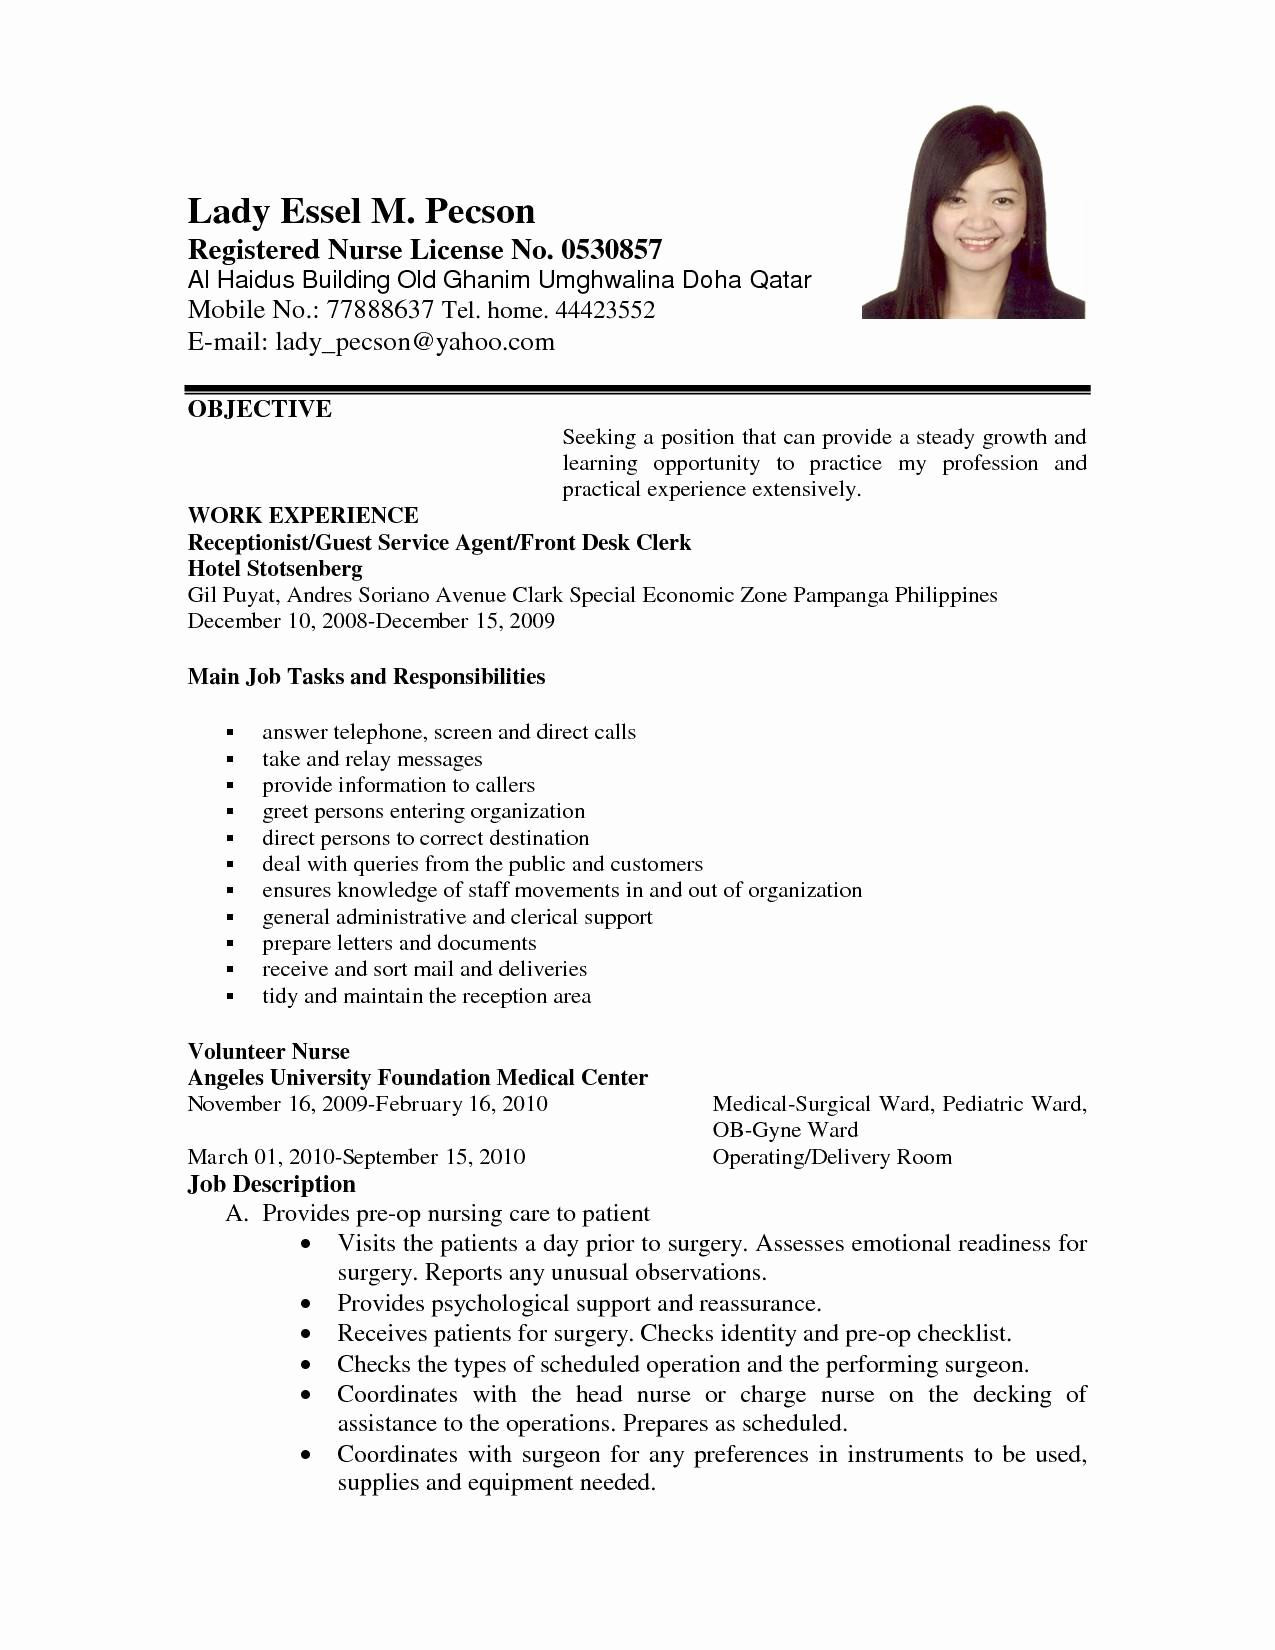 Inbound Call Center Job Description for Resume - Call Center Description for Resume Reference Call Center Cover